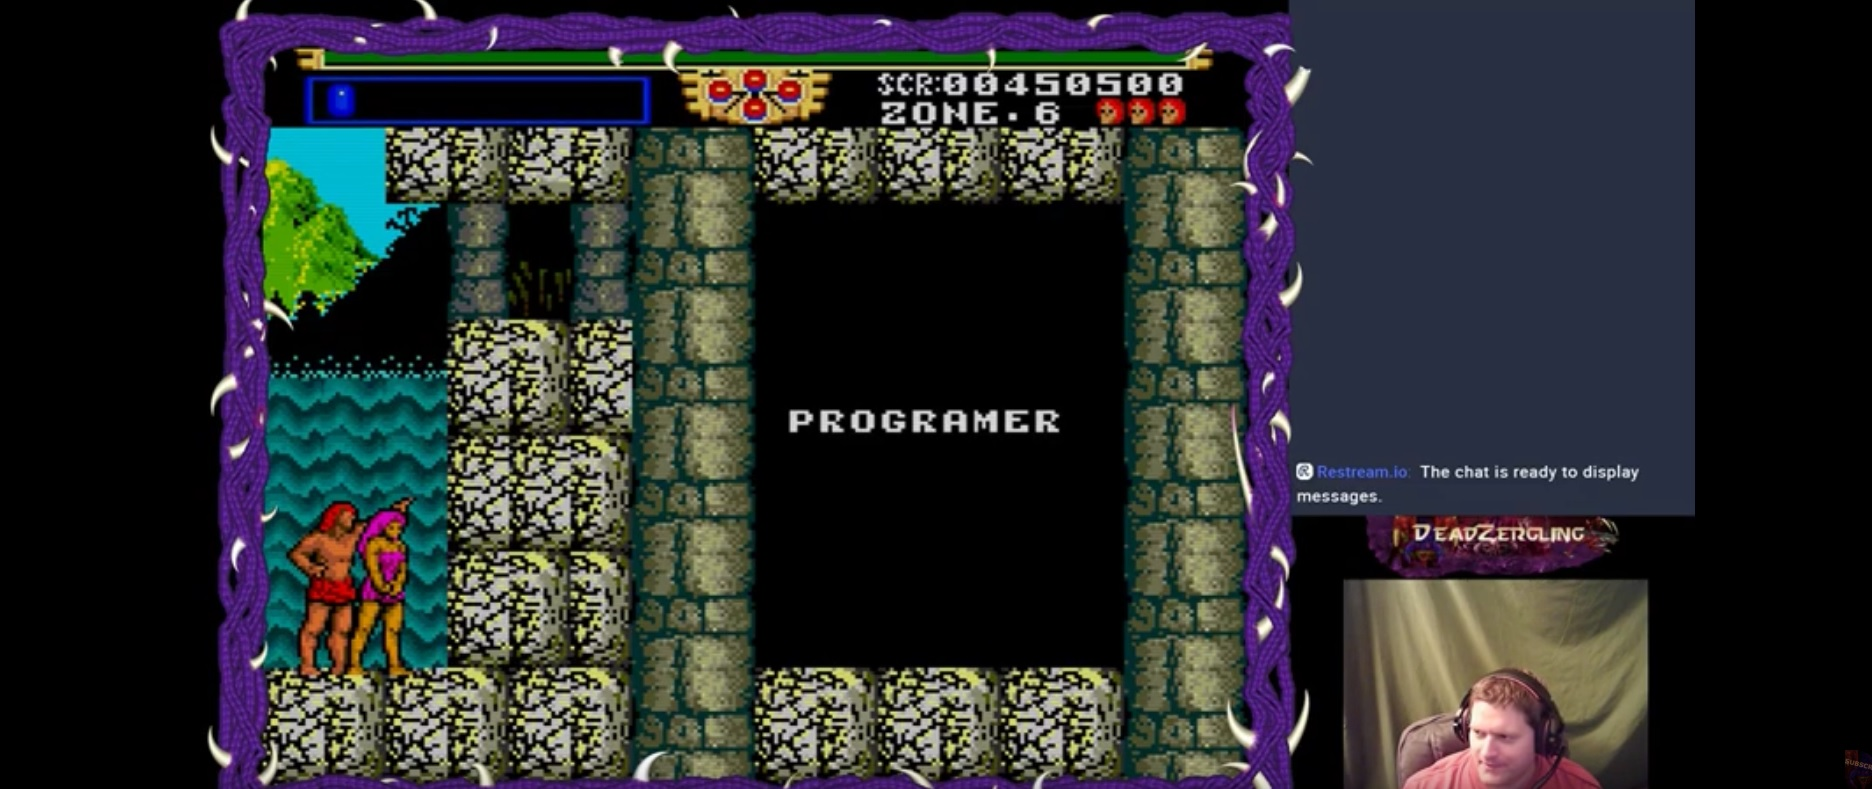 DeadZergling: Legendary Axe (TurboGrafx-16/PC Engine Emulated) 450,500 points on 2020-02-18 02:55:41